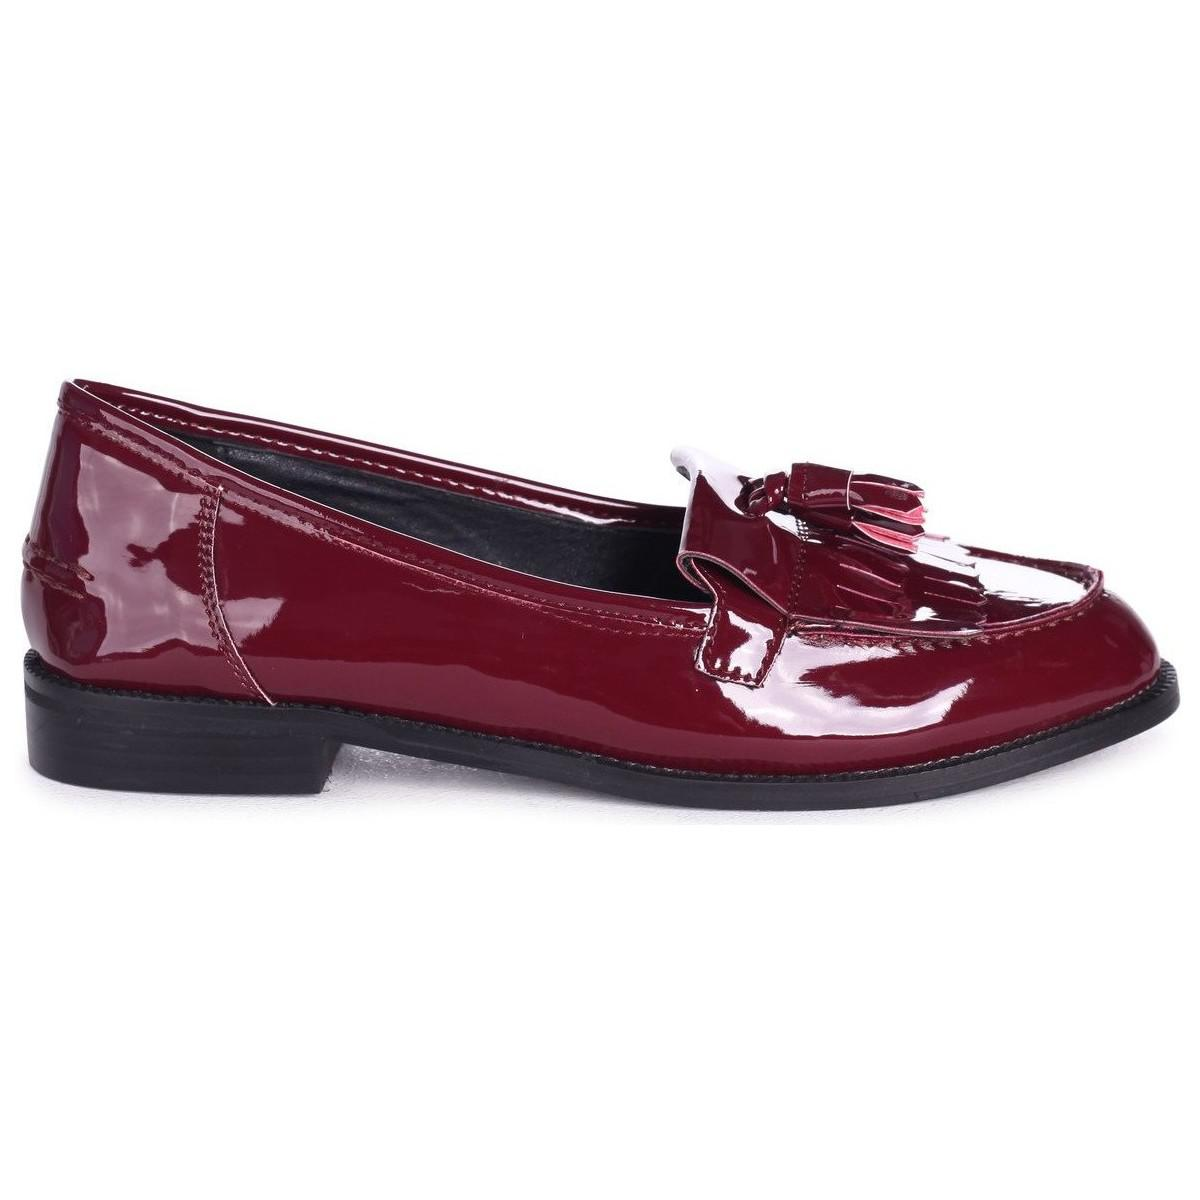 ad180eaa569 Linzi Rosemary Women s Loafers   Casual Shoes In Red in Red - Lyst